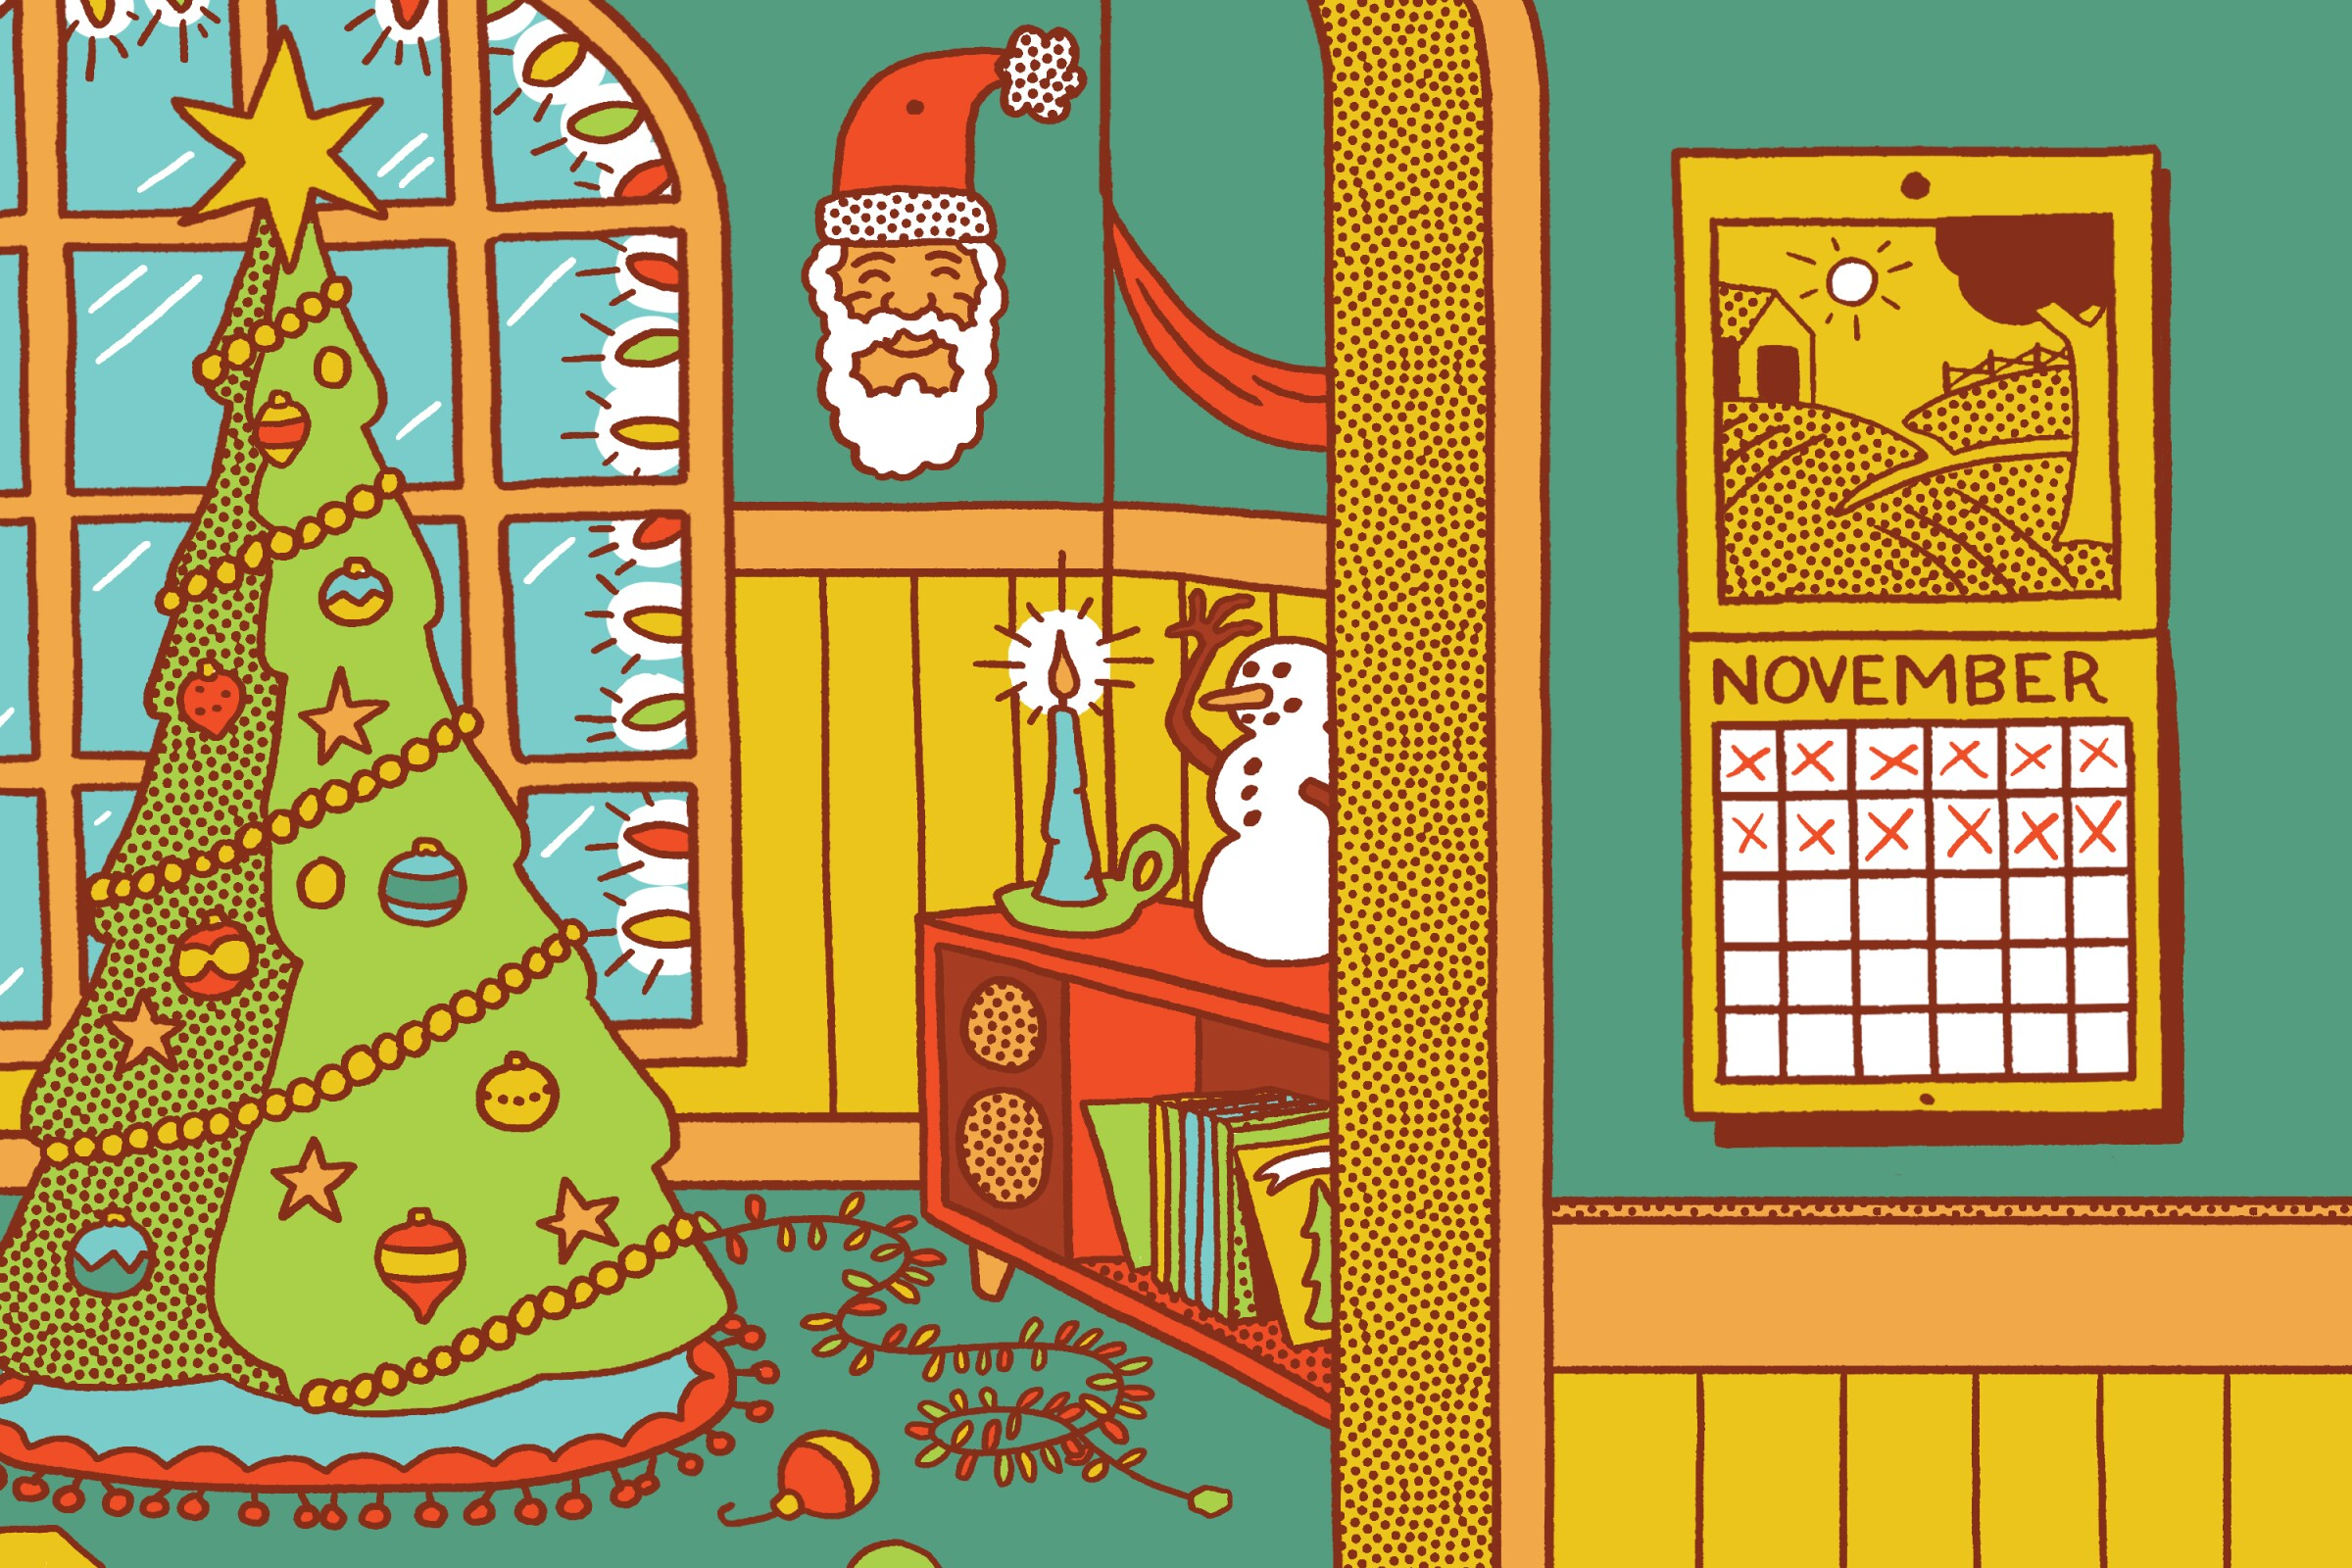 Illustration of Christmas decorations up in November